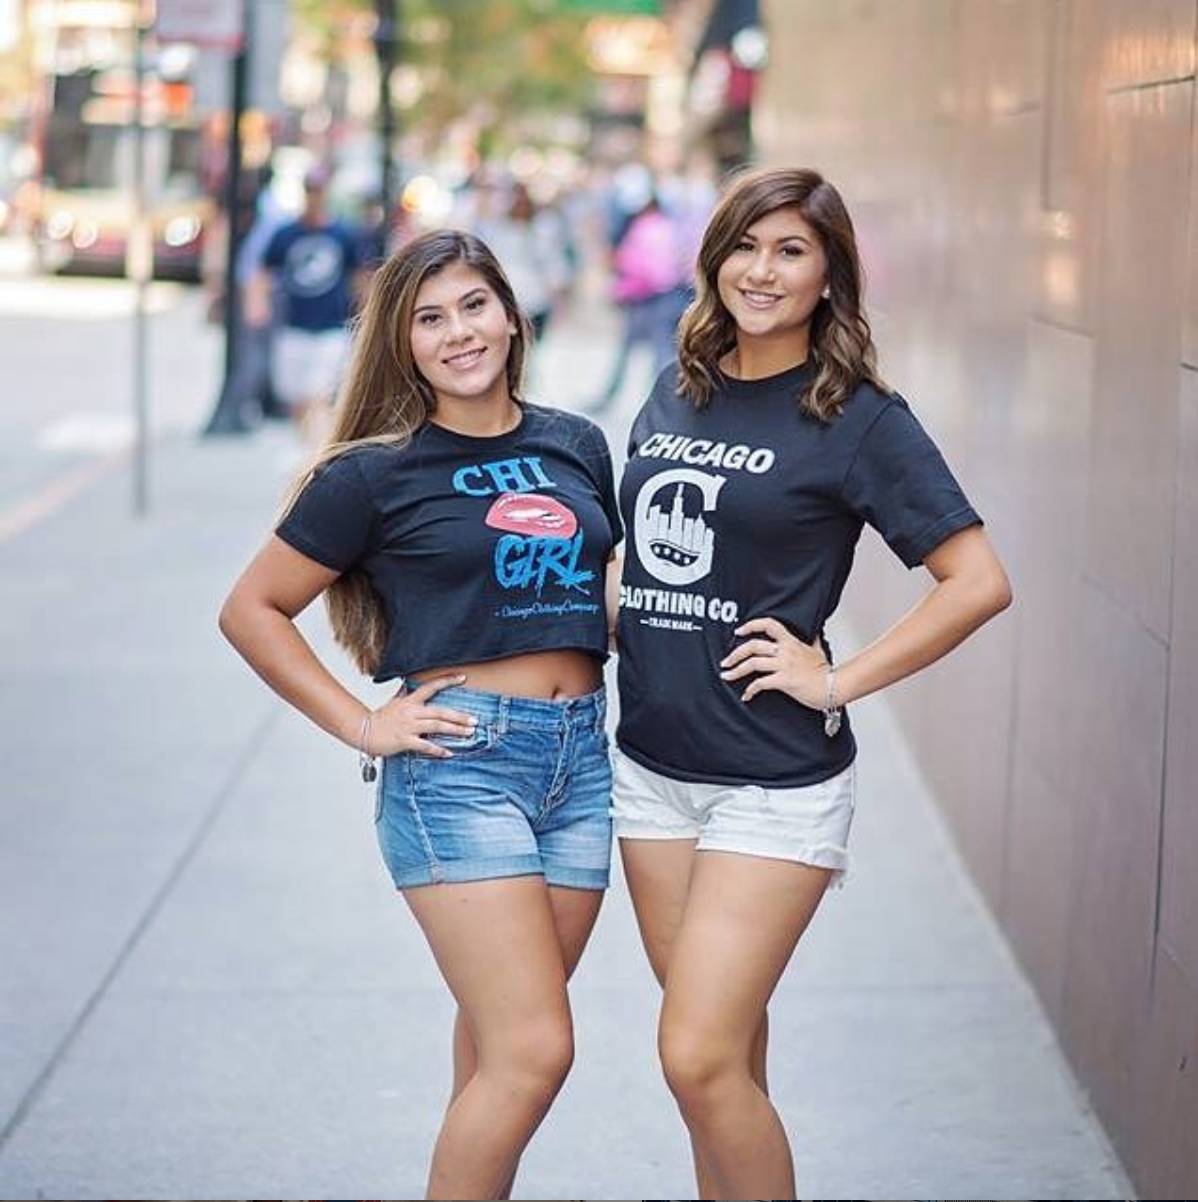 Chicago Double Trouble! Go to the website to receive discounts on shirts! @chicagoclothingcompany #chicago #chigram #chicity #chicagogram #chi #chitown #fashion #style #amazing #like love #share #follow #beautiful #girl #chigirls